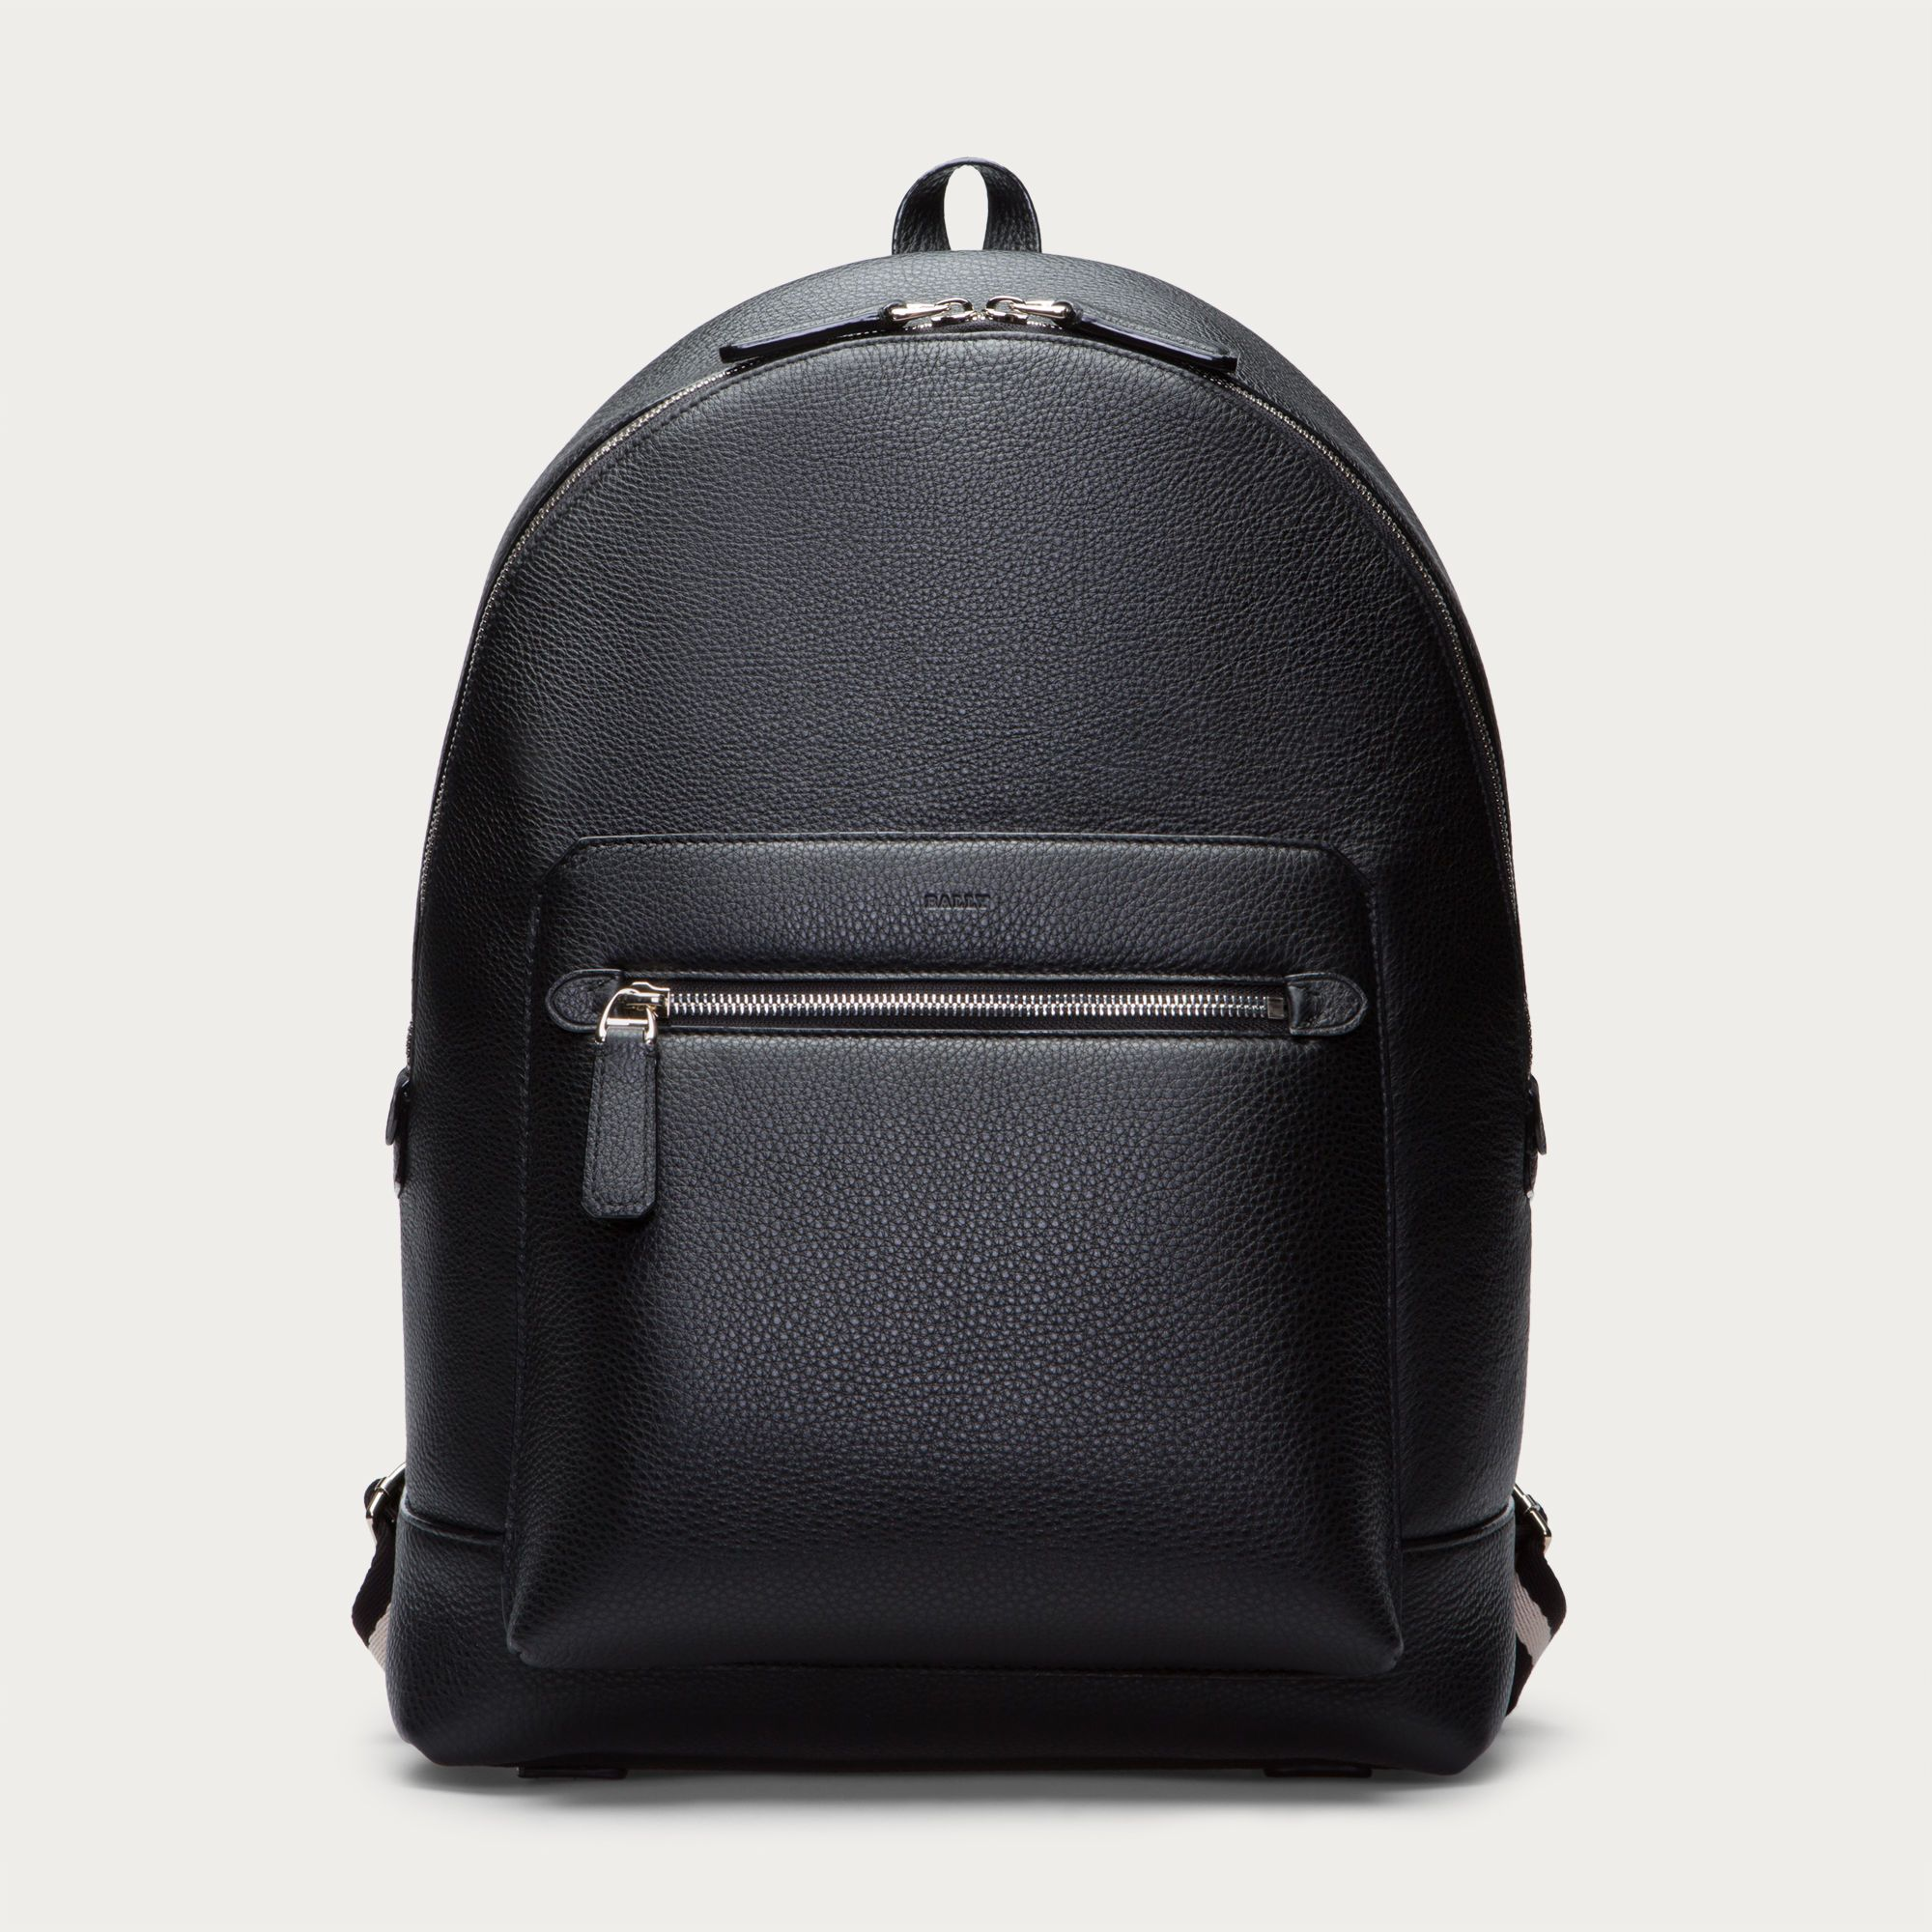 61befe623d MESSI - BLACK BOVINE Backpacks